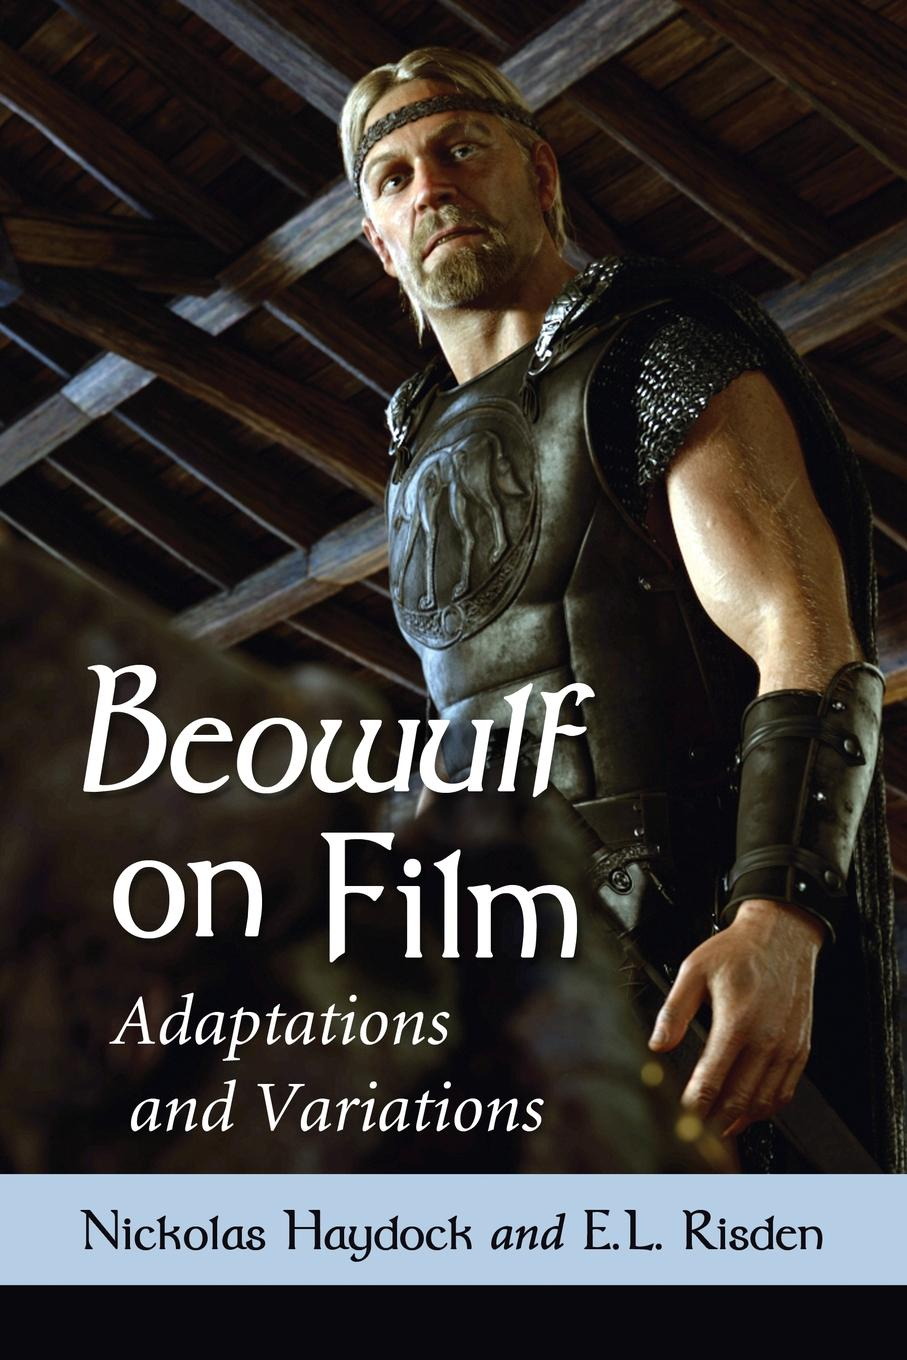 Nickolas Haydock, E L Risden. Beowulf on Film. Adaptations and Variations